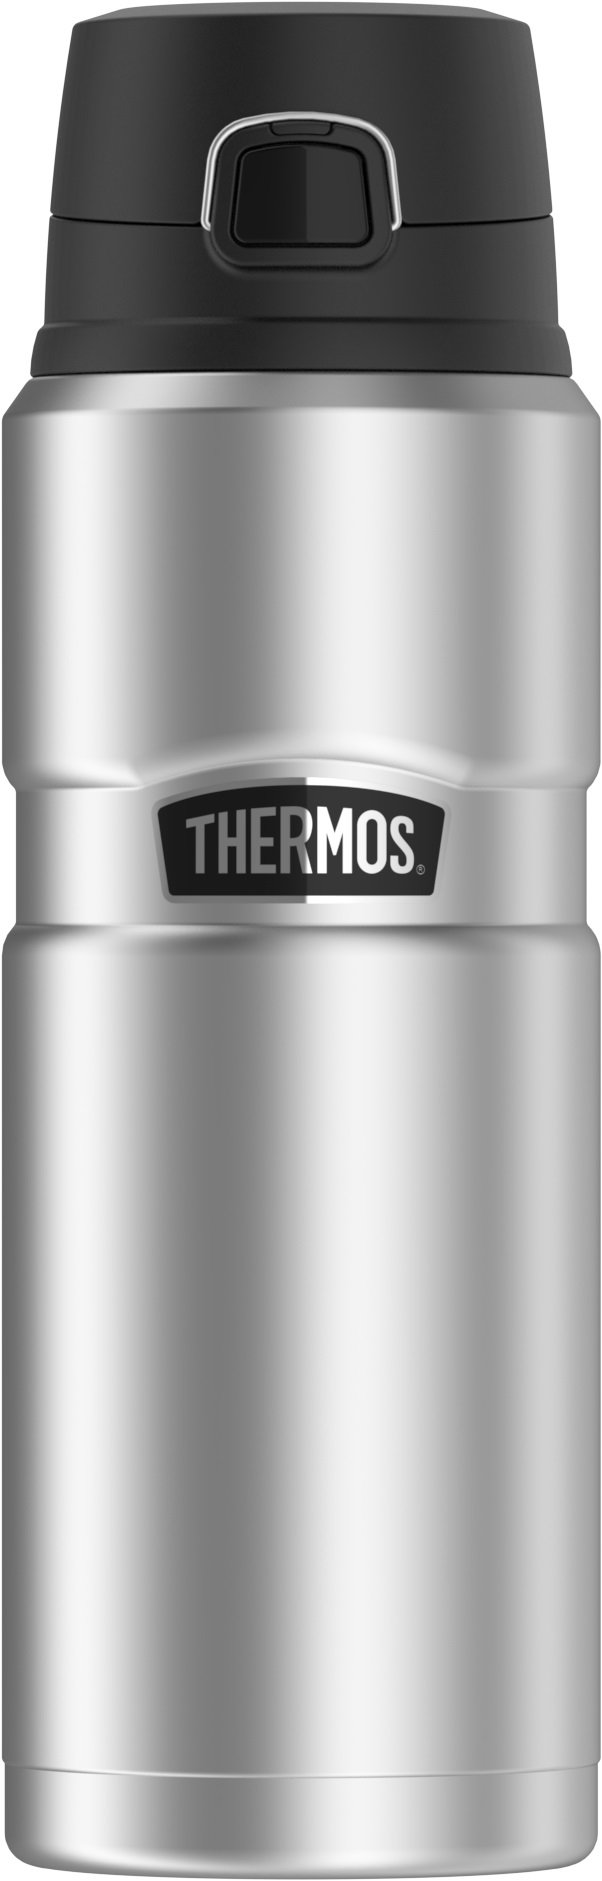 Thermos Stainless King 24 Ounce Drink Bottle, Stainless Steel by Thermos